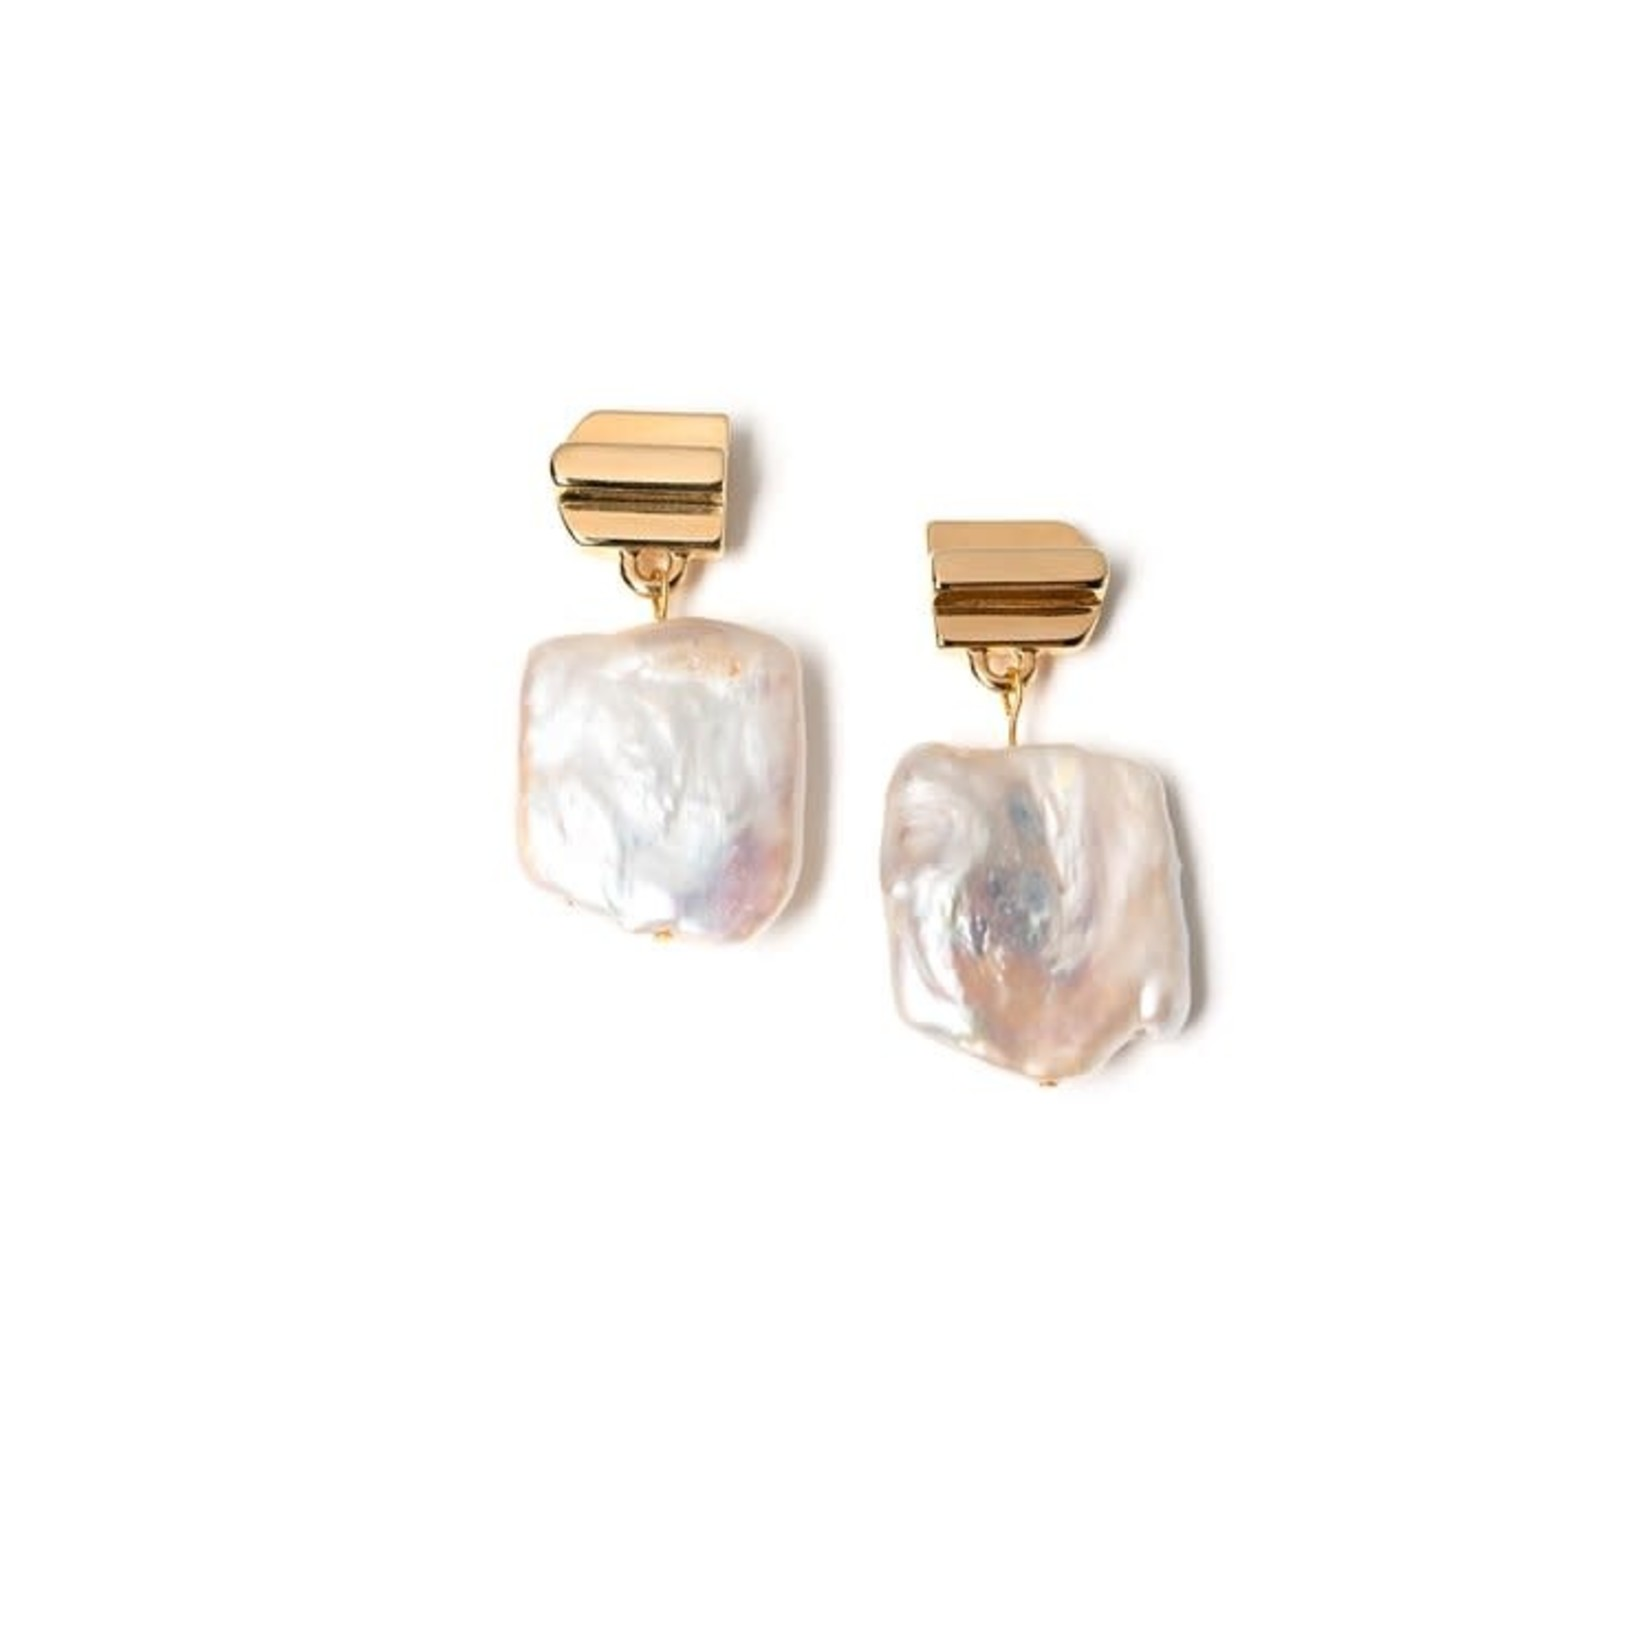 VUE by SEK Gold Layered Dome Earrings